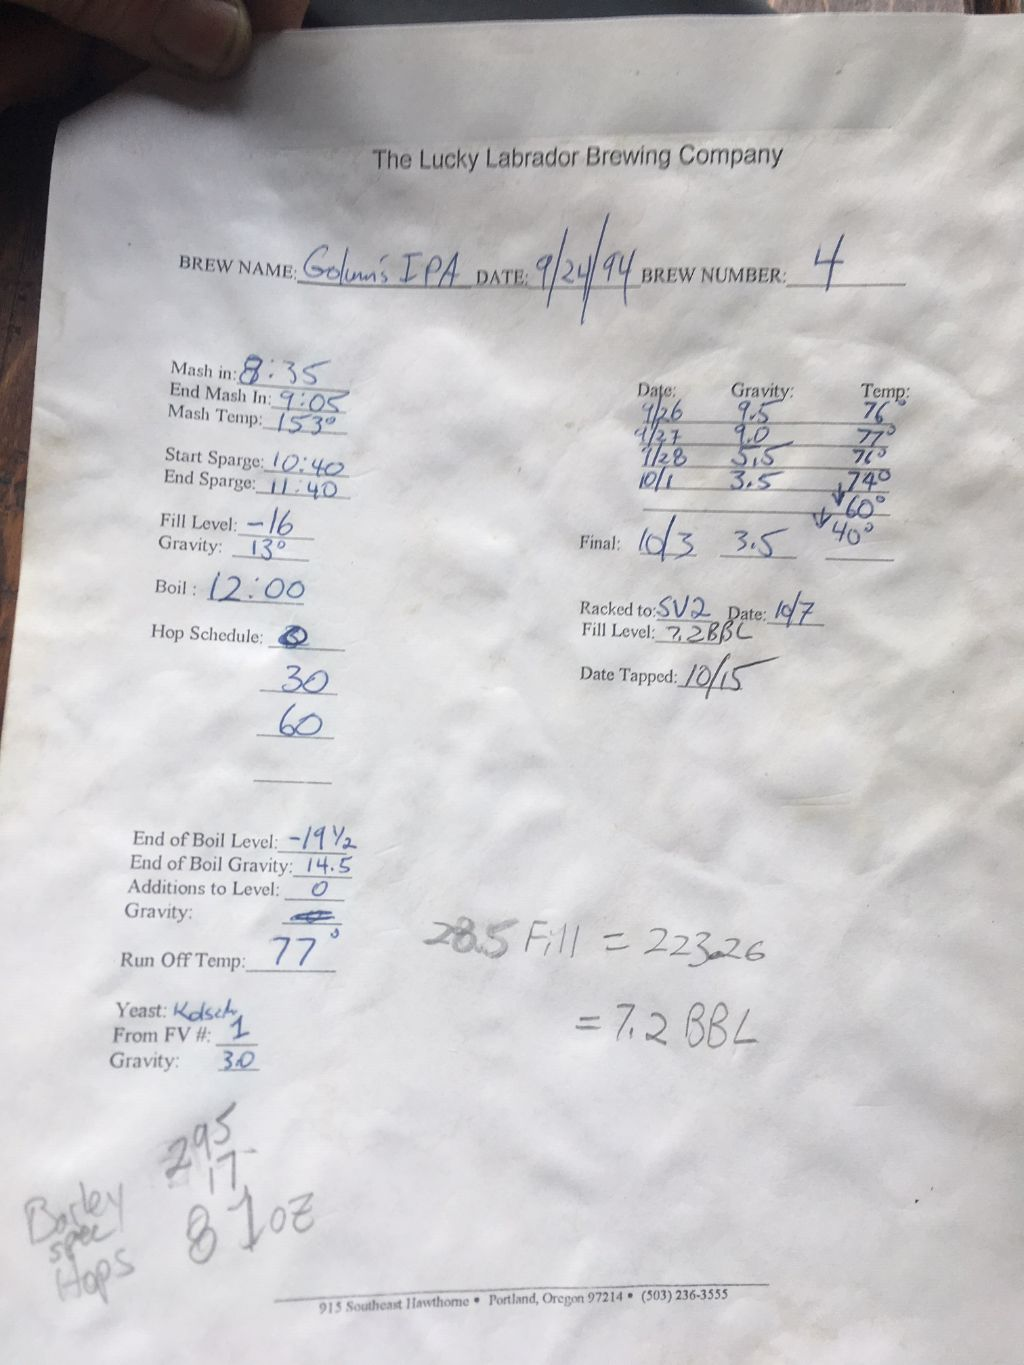 The brew sheet for Golum's IPA, the first IPA brewed at Lucky Lab in 1994. (FoystonFoto)